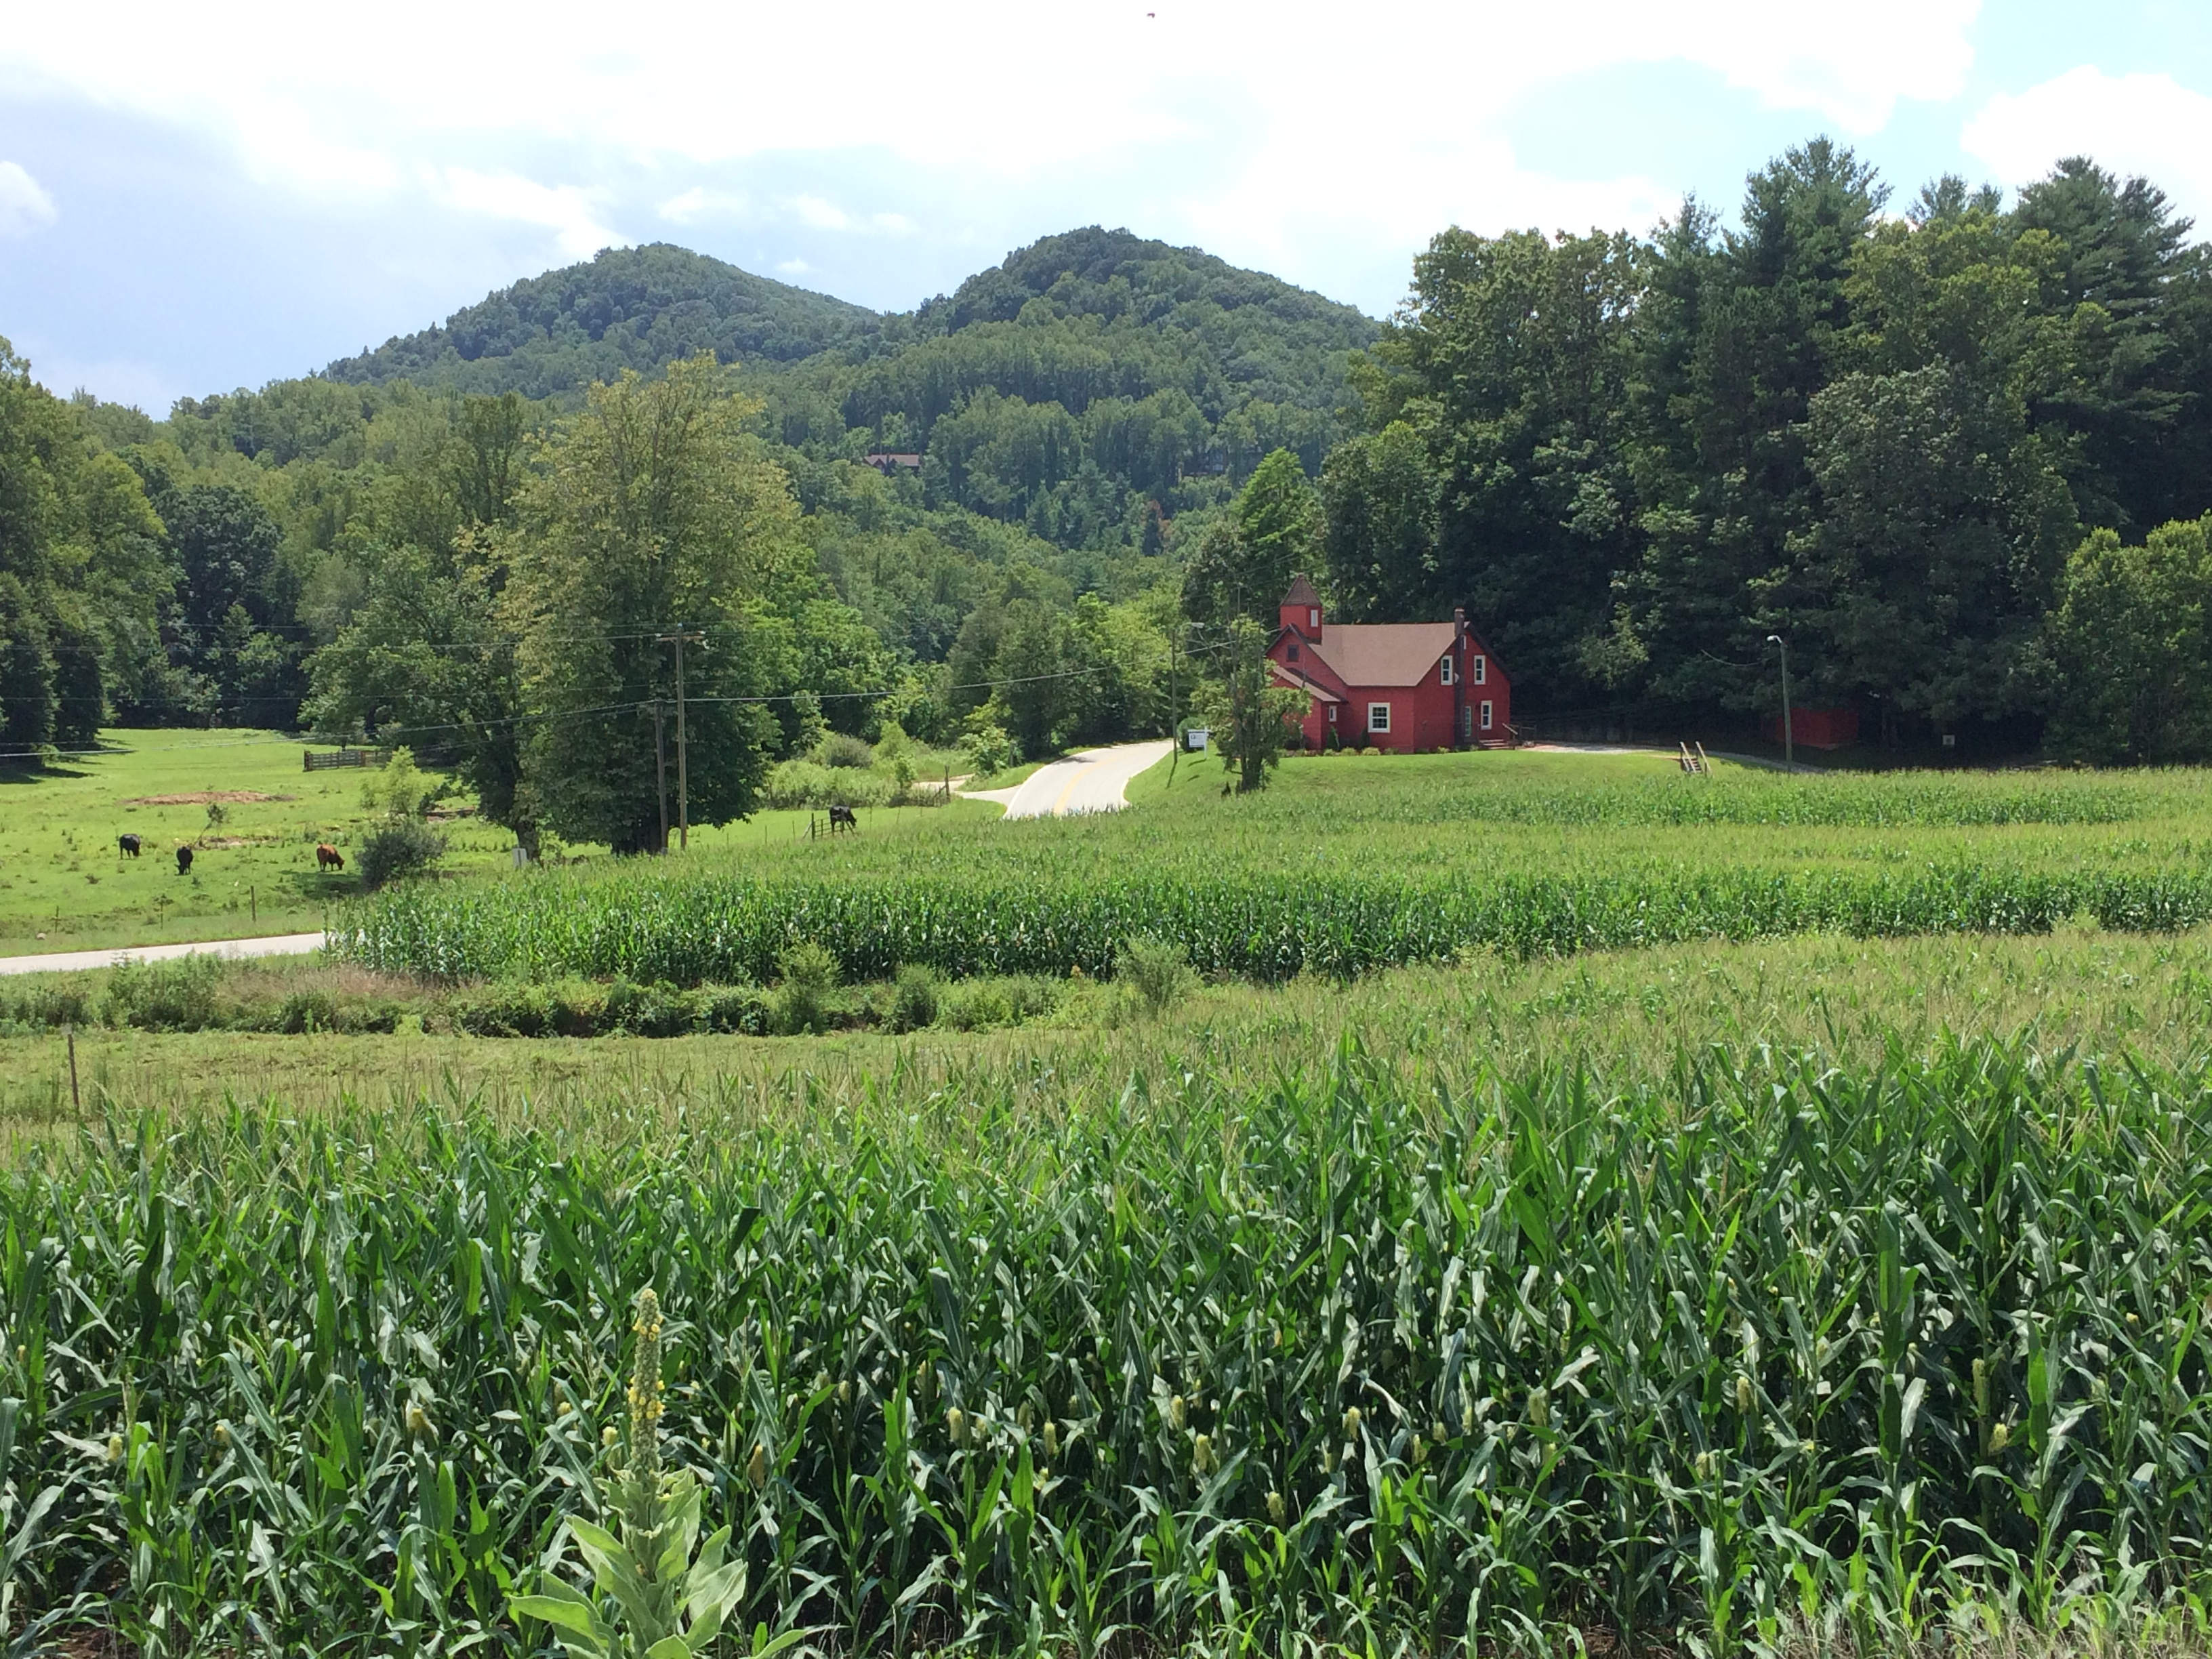 All lots view of farm and old church